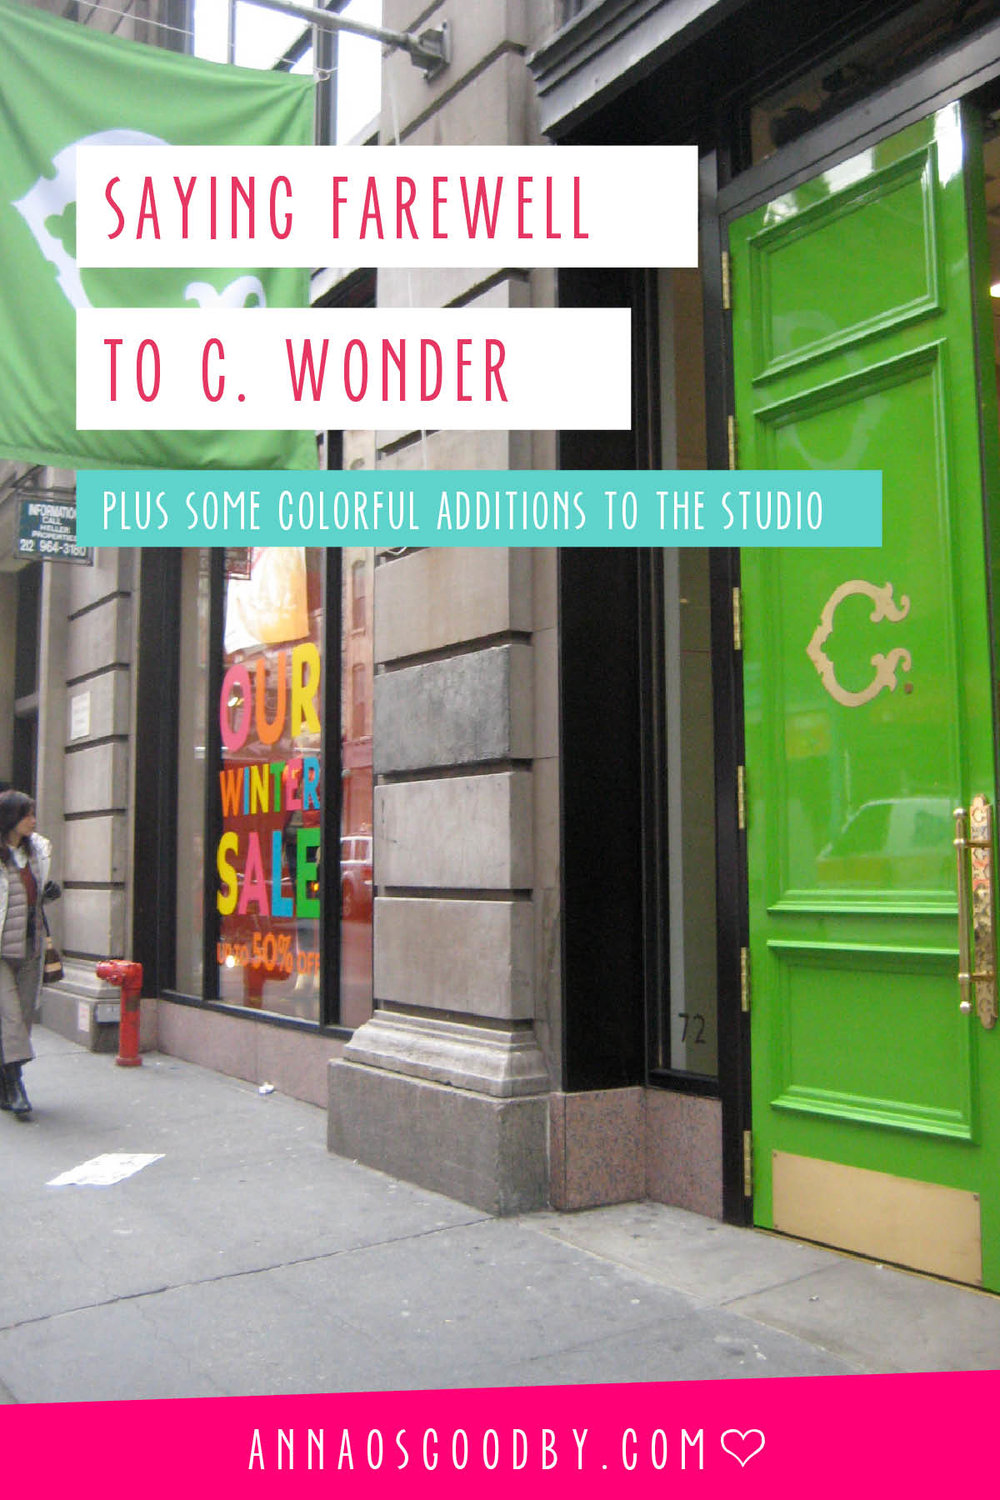 Anna Osgoodby Life + Design :: Saying Farewell to C. Wonder Plus Some Colorful Additions to the Studio